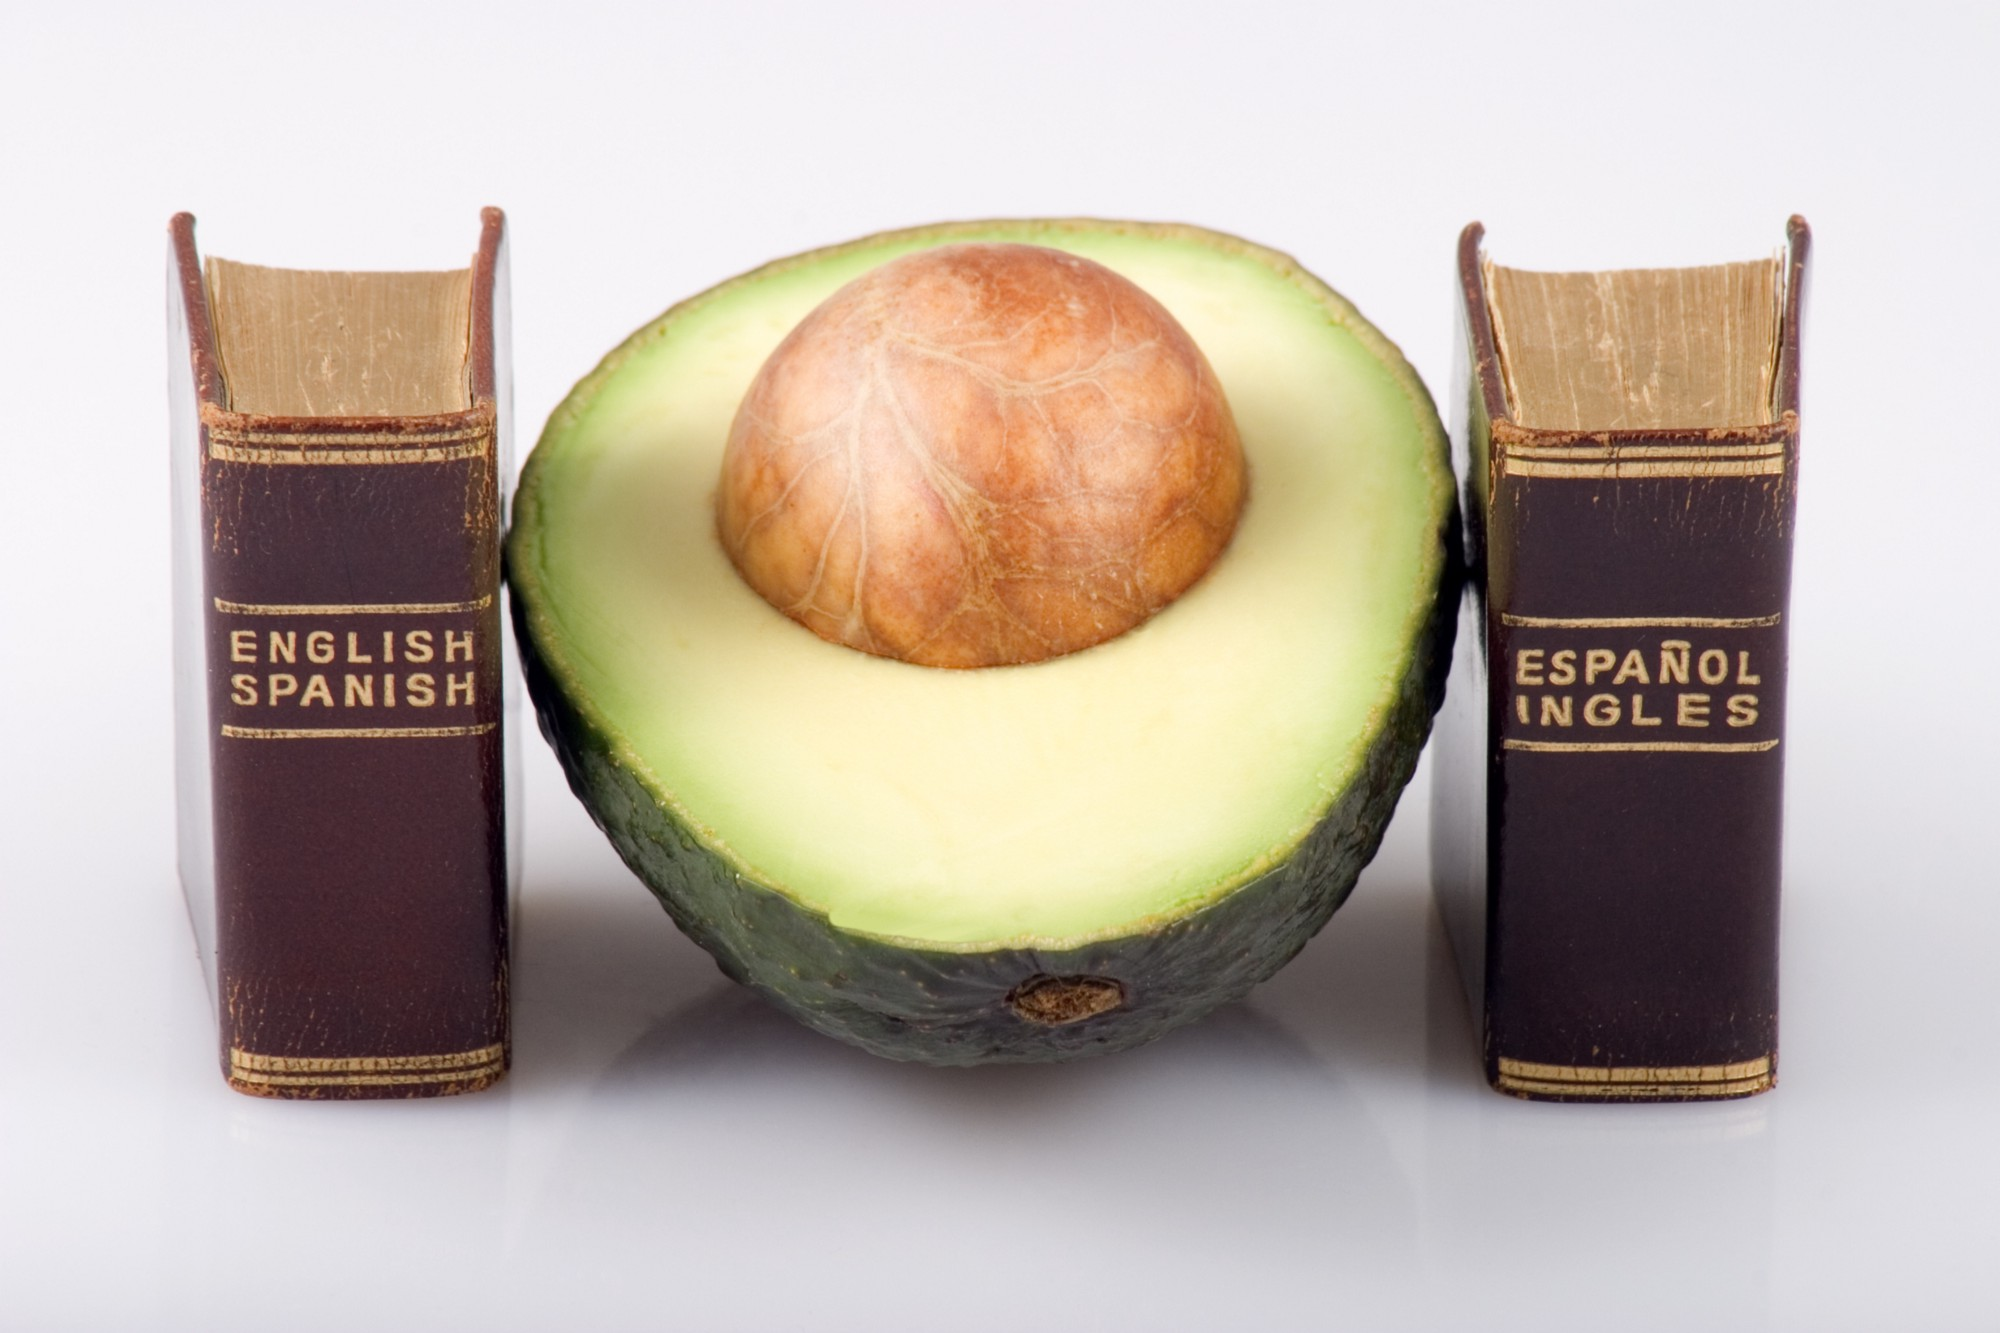 Half an avocado with seed sits between two miniature translation dictionaries